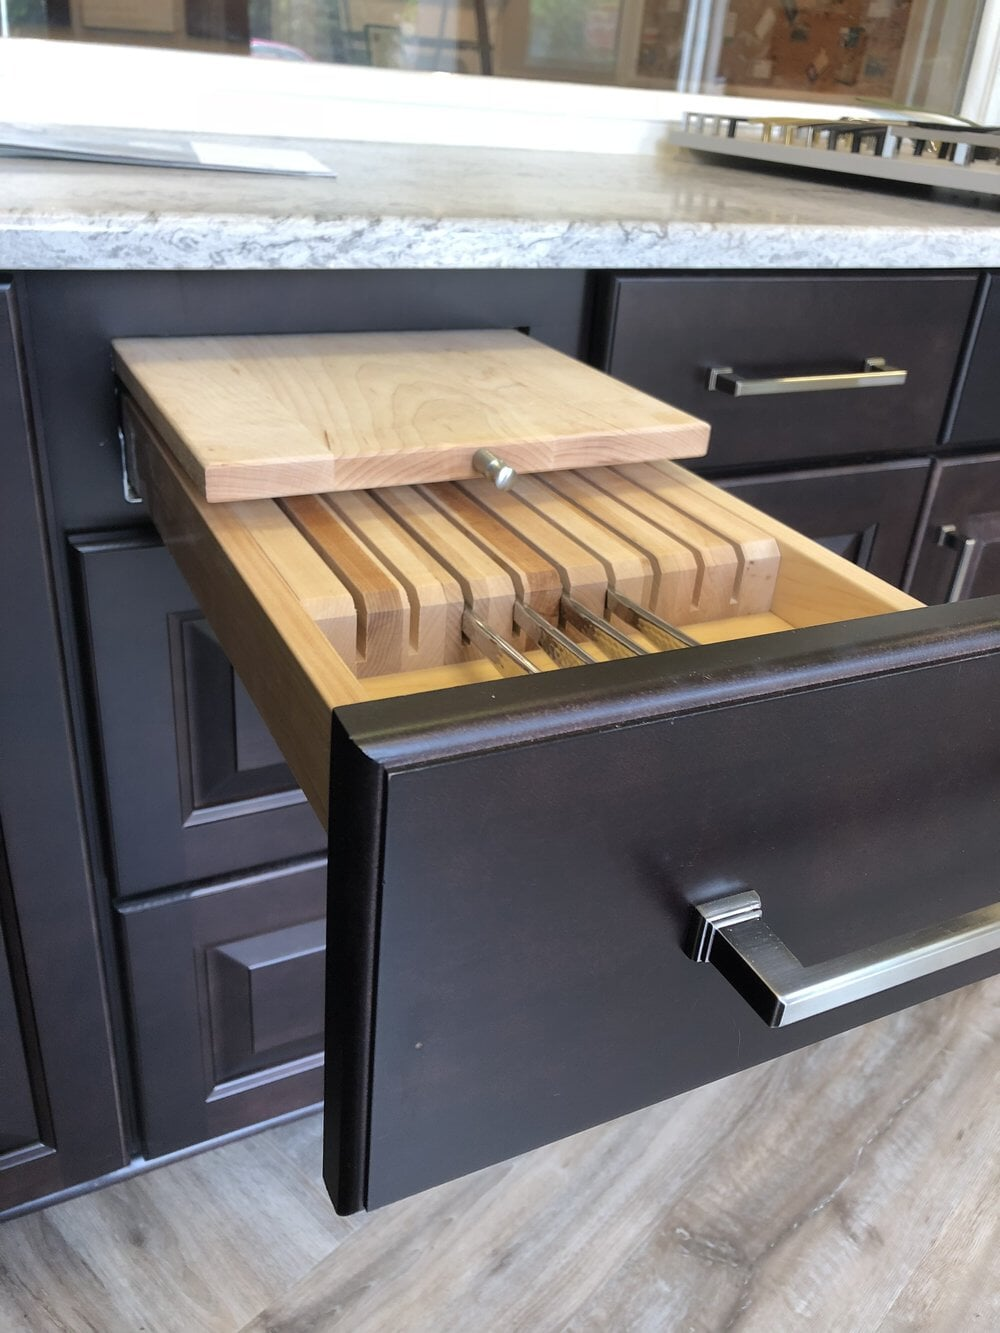 Kitchen cabinet drawer with custom knife rack in Cornelius, NC from LITTLE Wood Flooring & Cabinetry